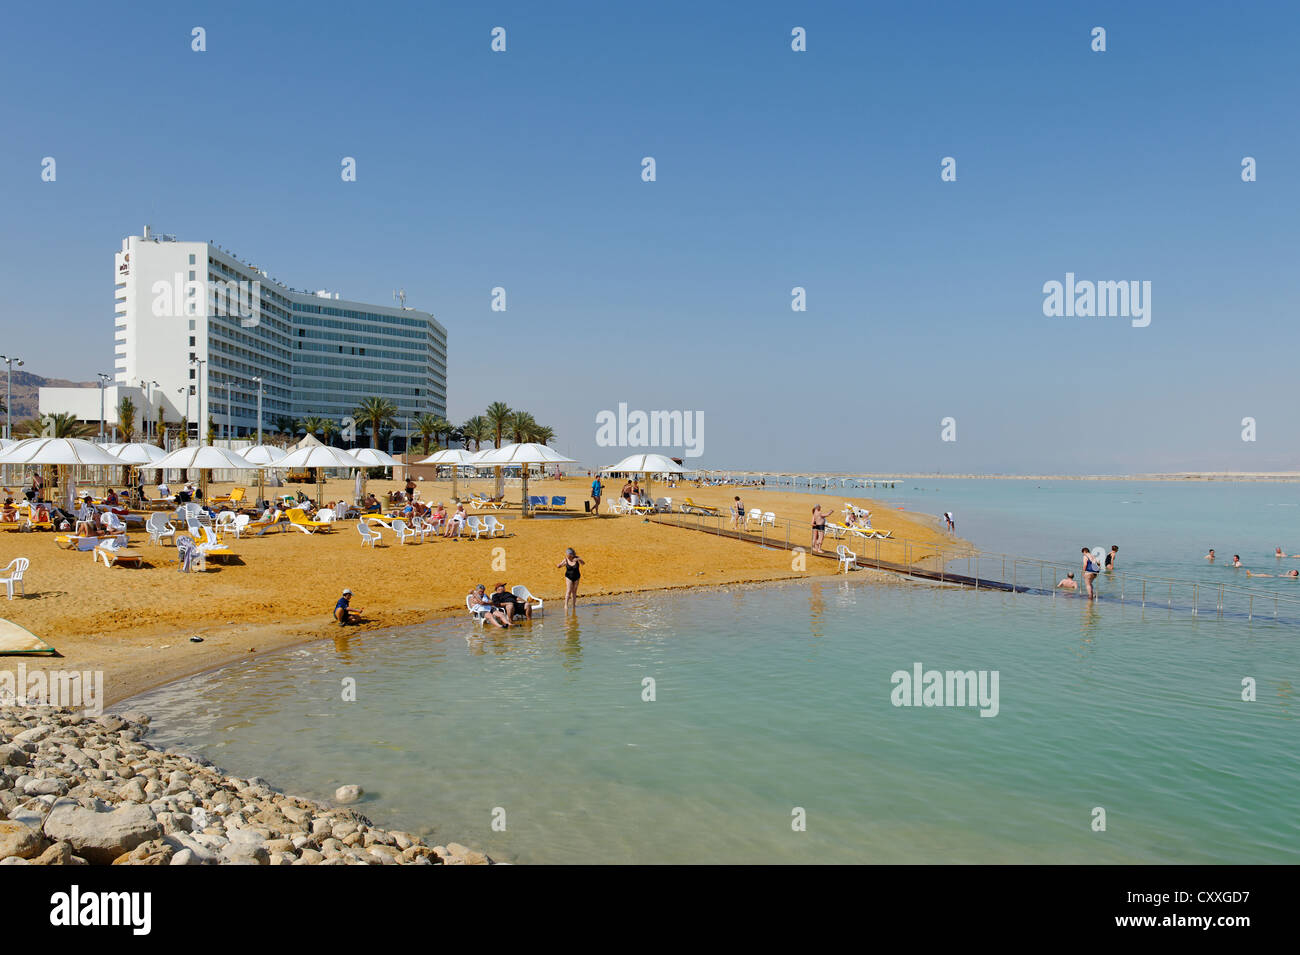 Beach, Ein Bokek, En Boqeq, Dead Sea, Israel, Middle East - Stock Image